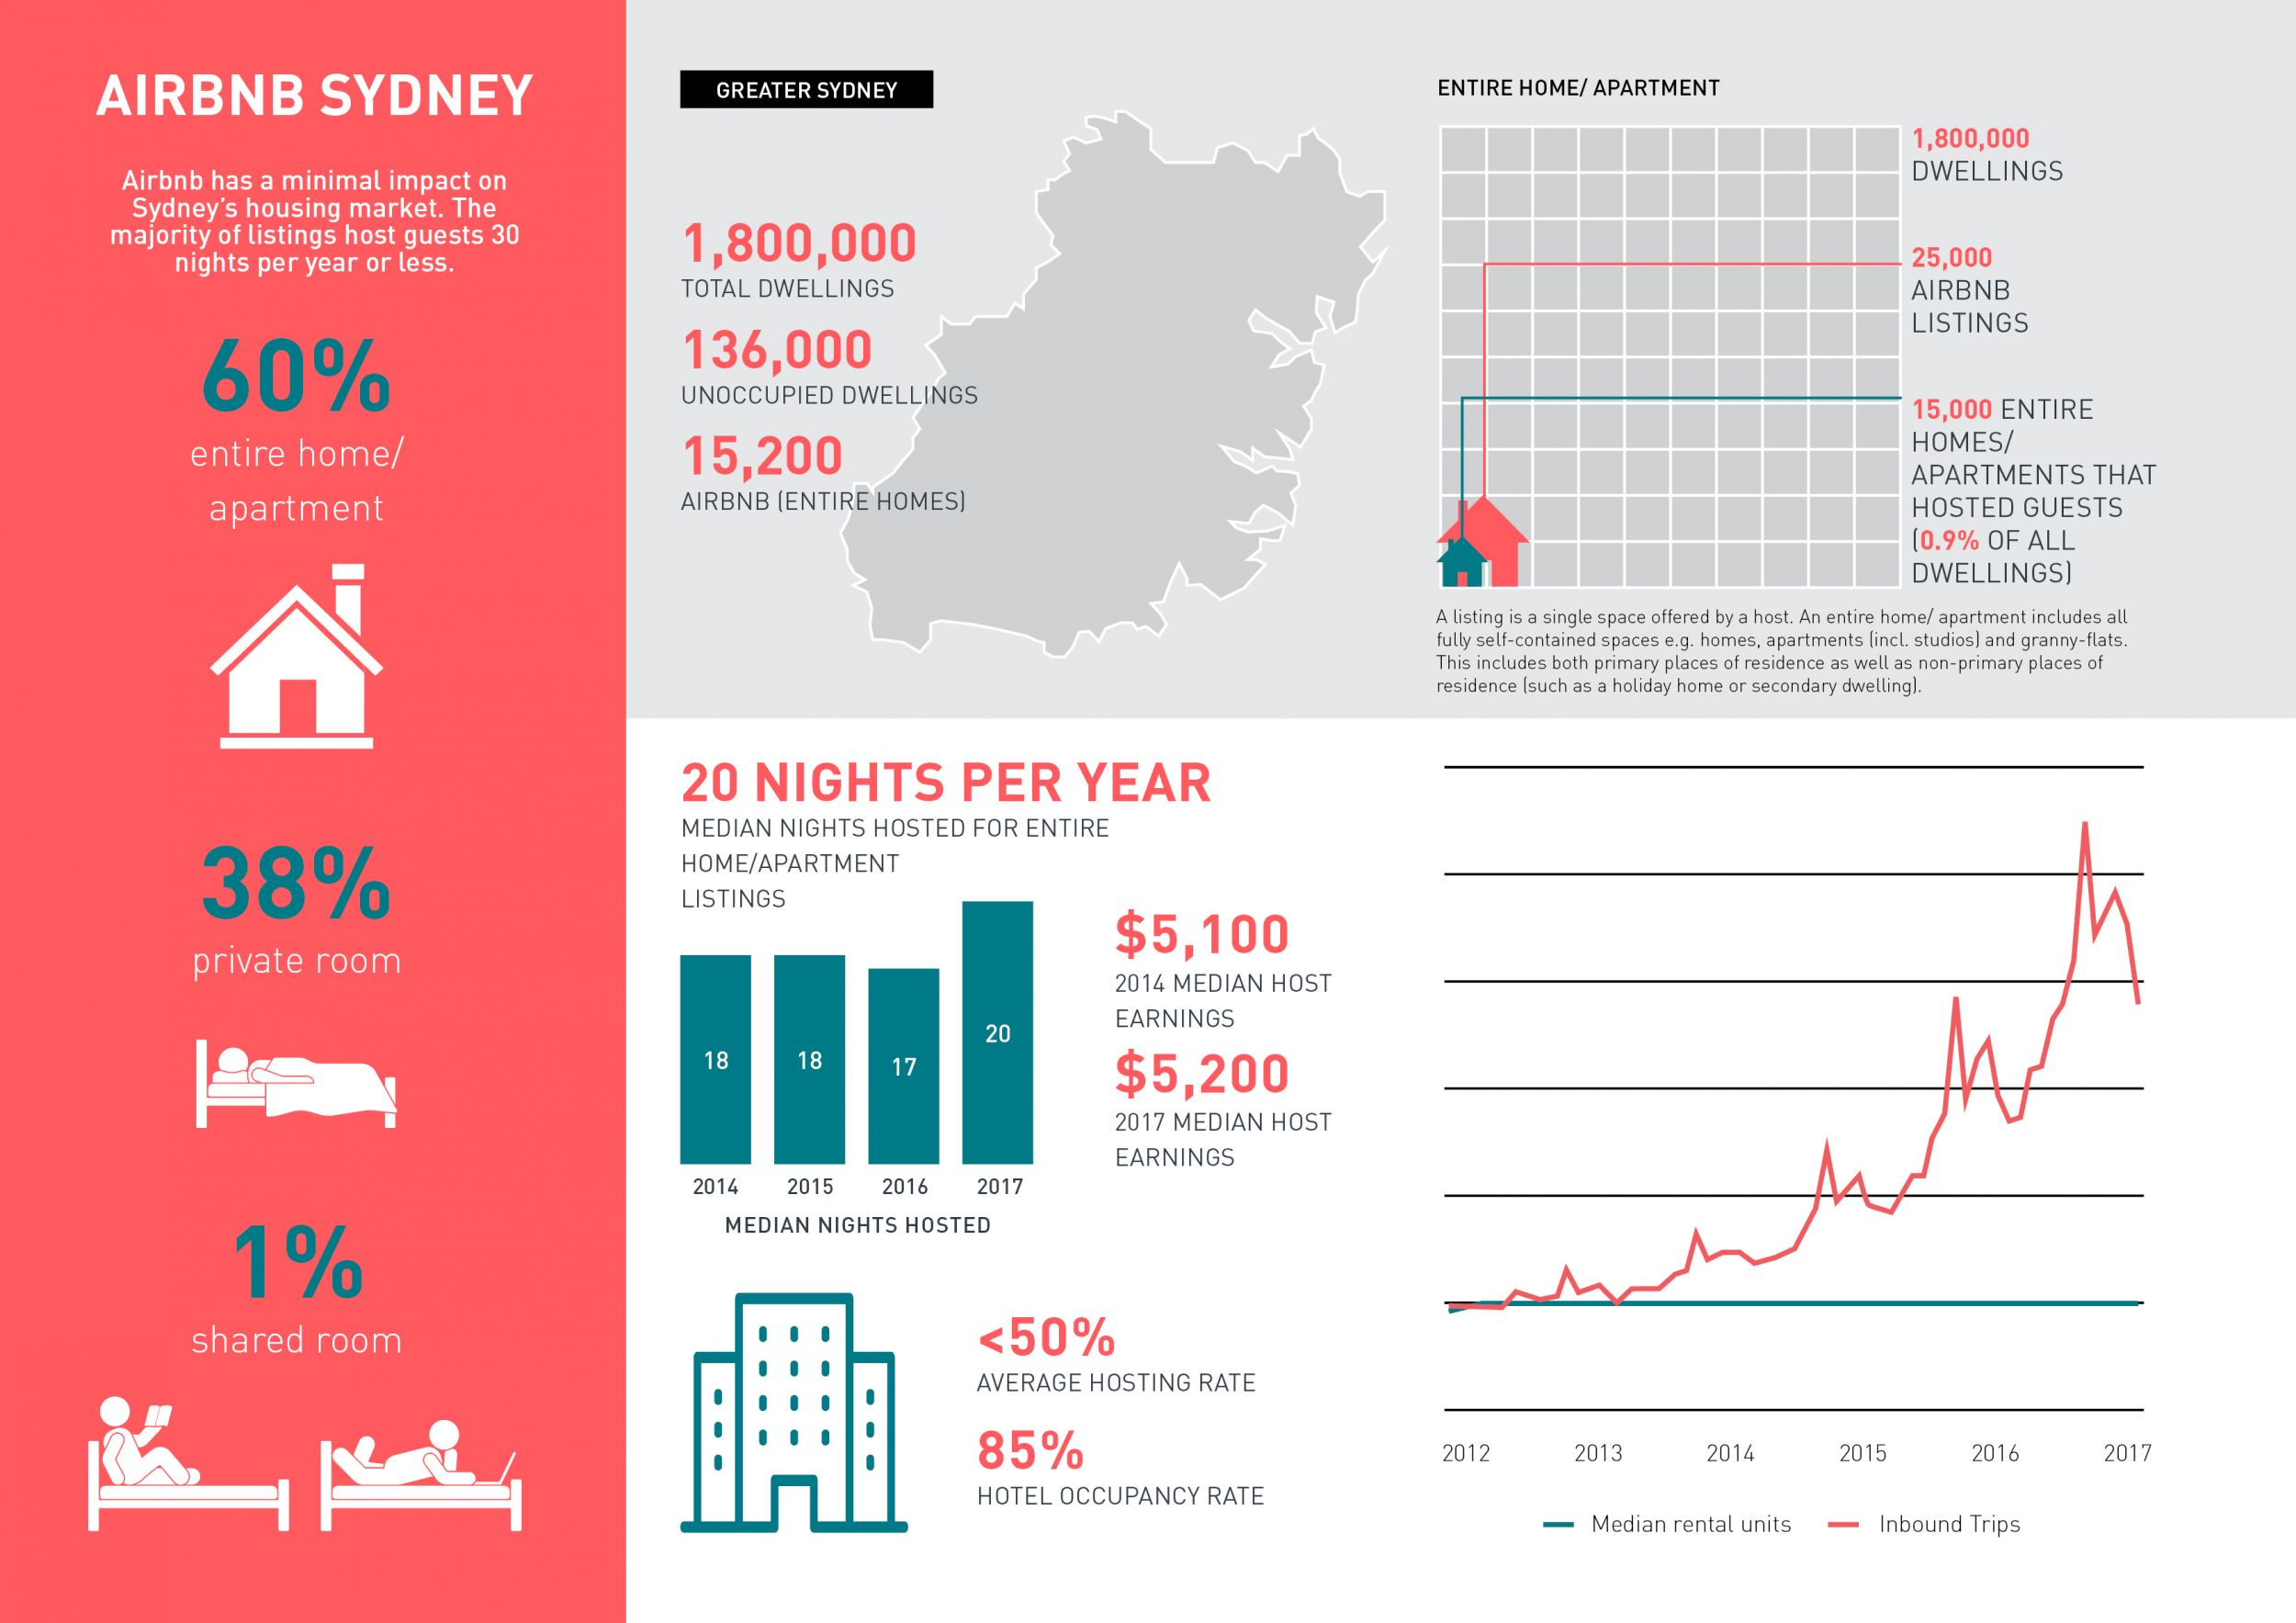 SGS Economics and Planning airbnb Sydney